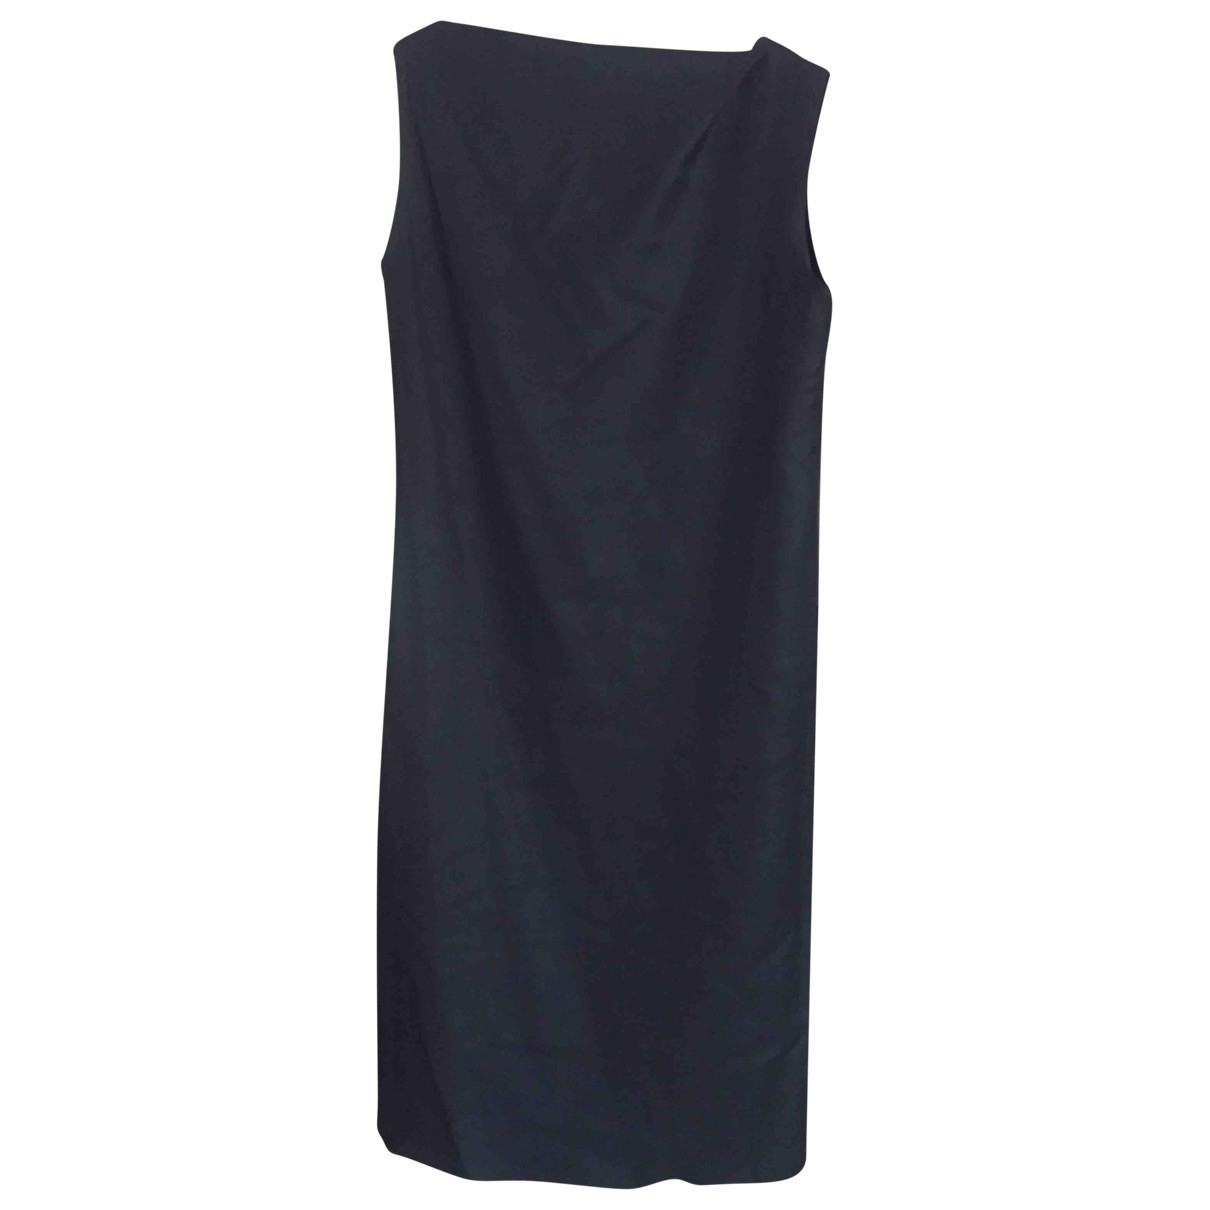 Maison Martin Margiela \N Black Wool dress for Women 44 IT